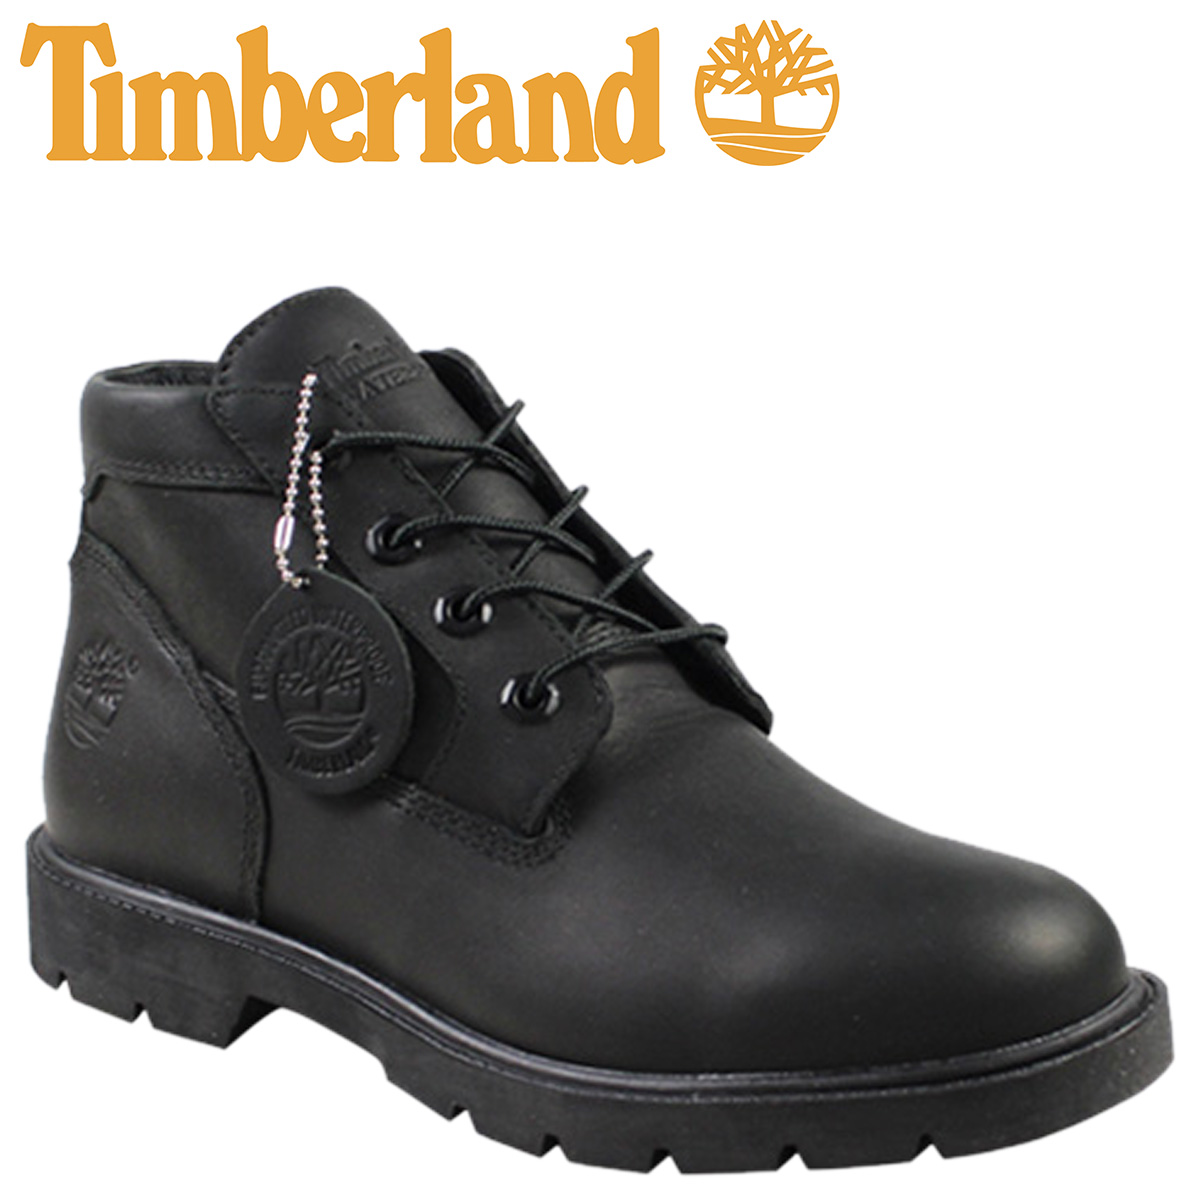 22047 black men's leather BOOT CHUKKA VALUE of boots chukka Timberland Timberland value [3 / 24 new in stock] [regular] ★ ★ 02P11Apr15